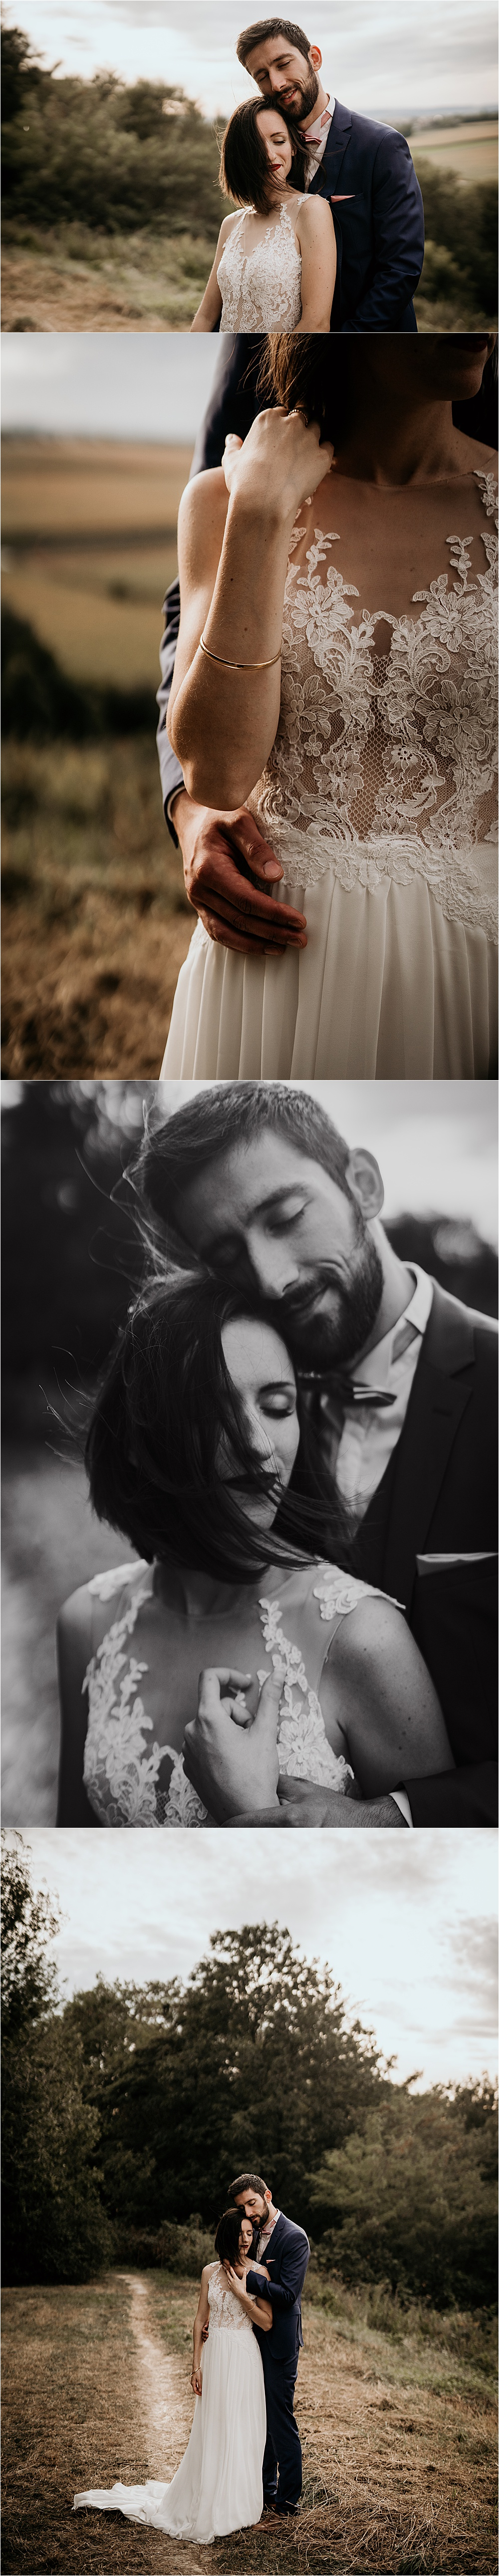 Day After Mariage Photographe Mariage Alsace Strasbourg Mulhouse